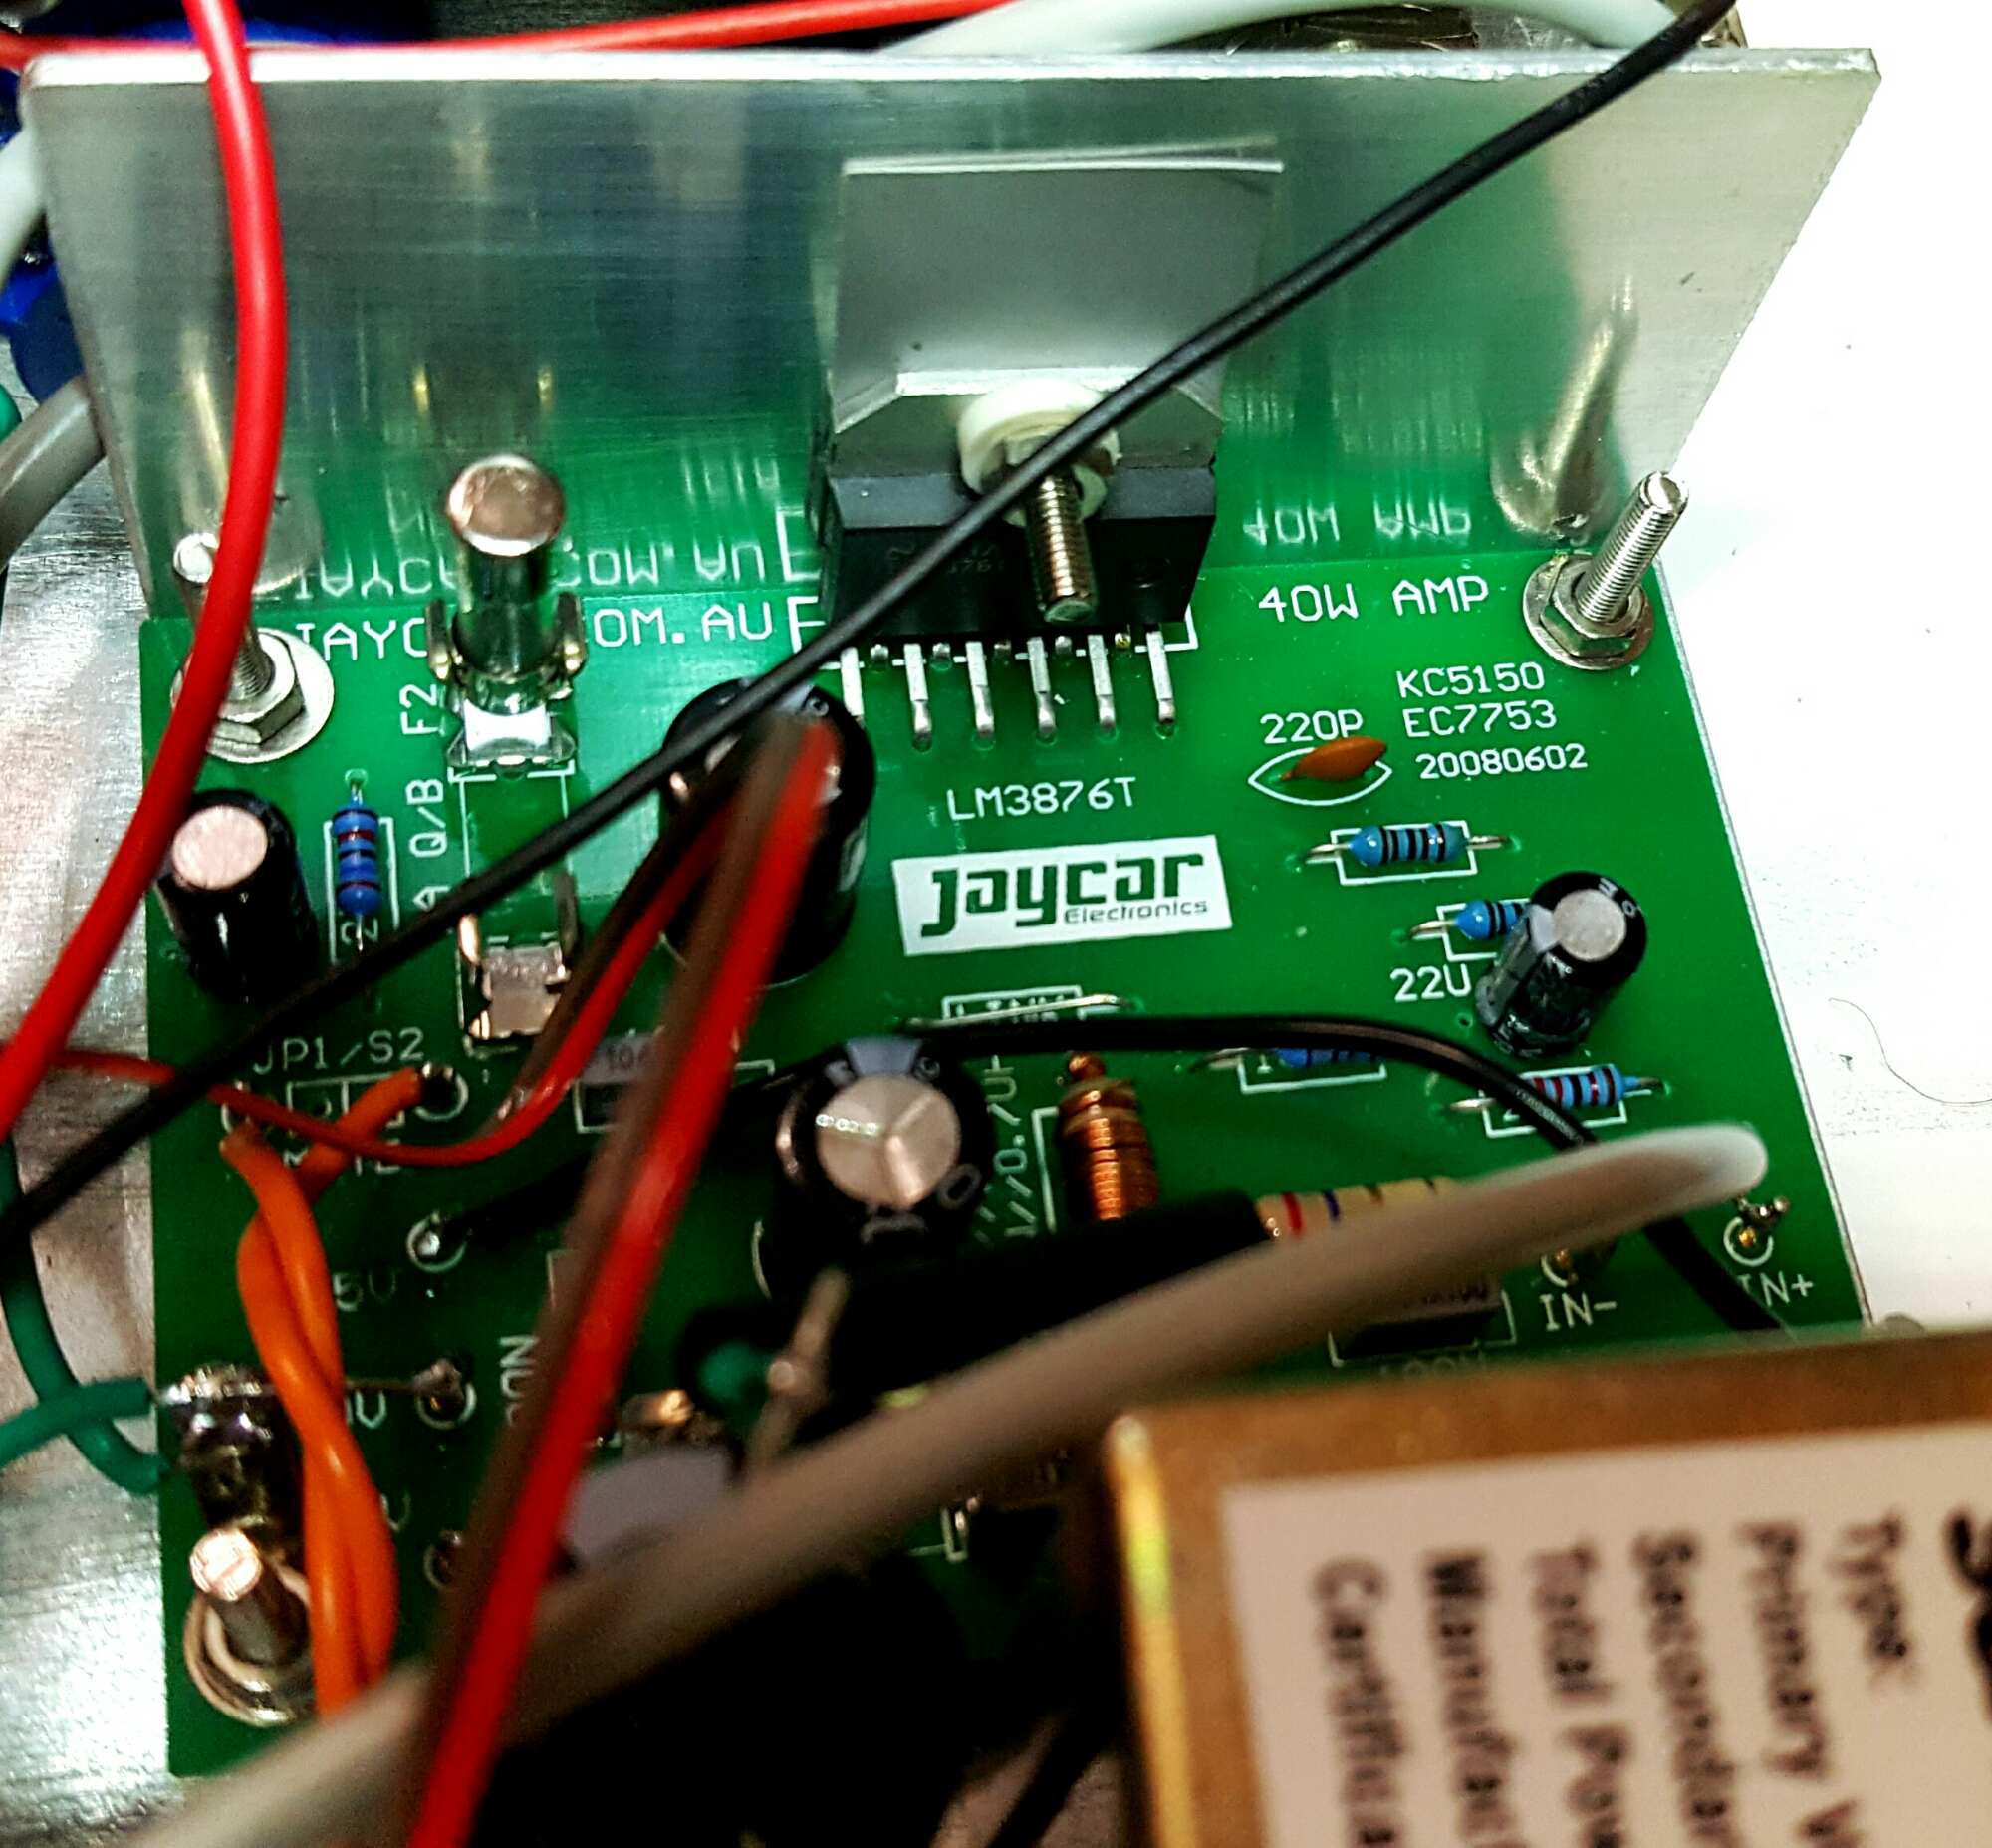 Homebrew 160 Meter Am Cw Transmitter Receiver Vk3hn How To Build Simple The Microphone Amplifier Is A 2n5485 And 741 Op Amp I Mean Replace Older With Quieter One Once Rig Debugged